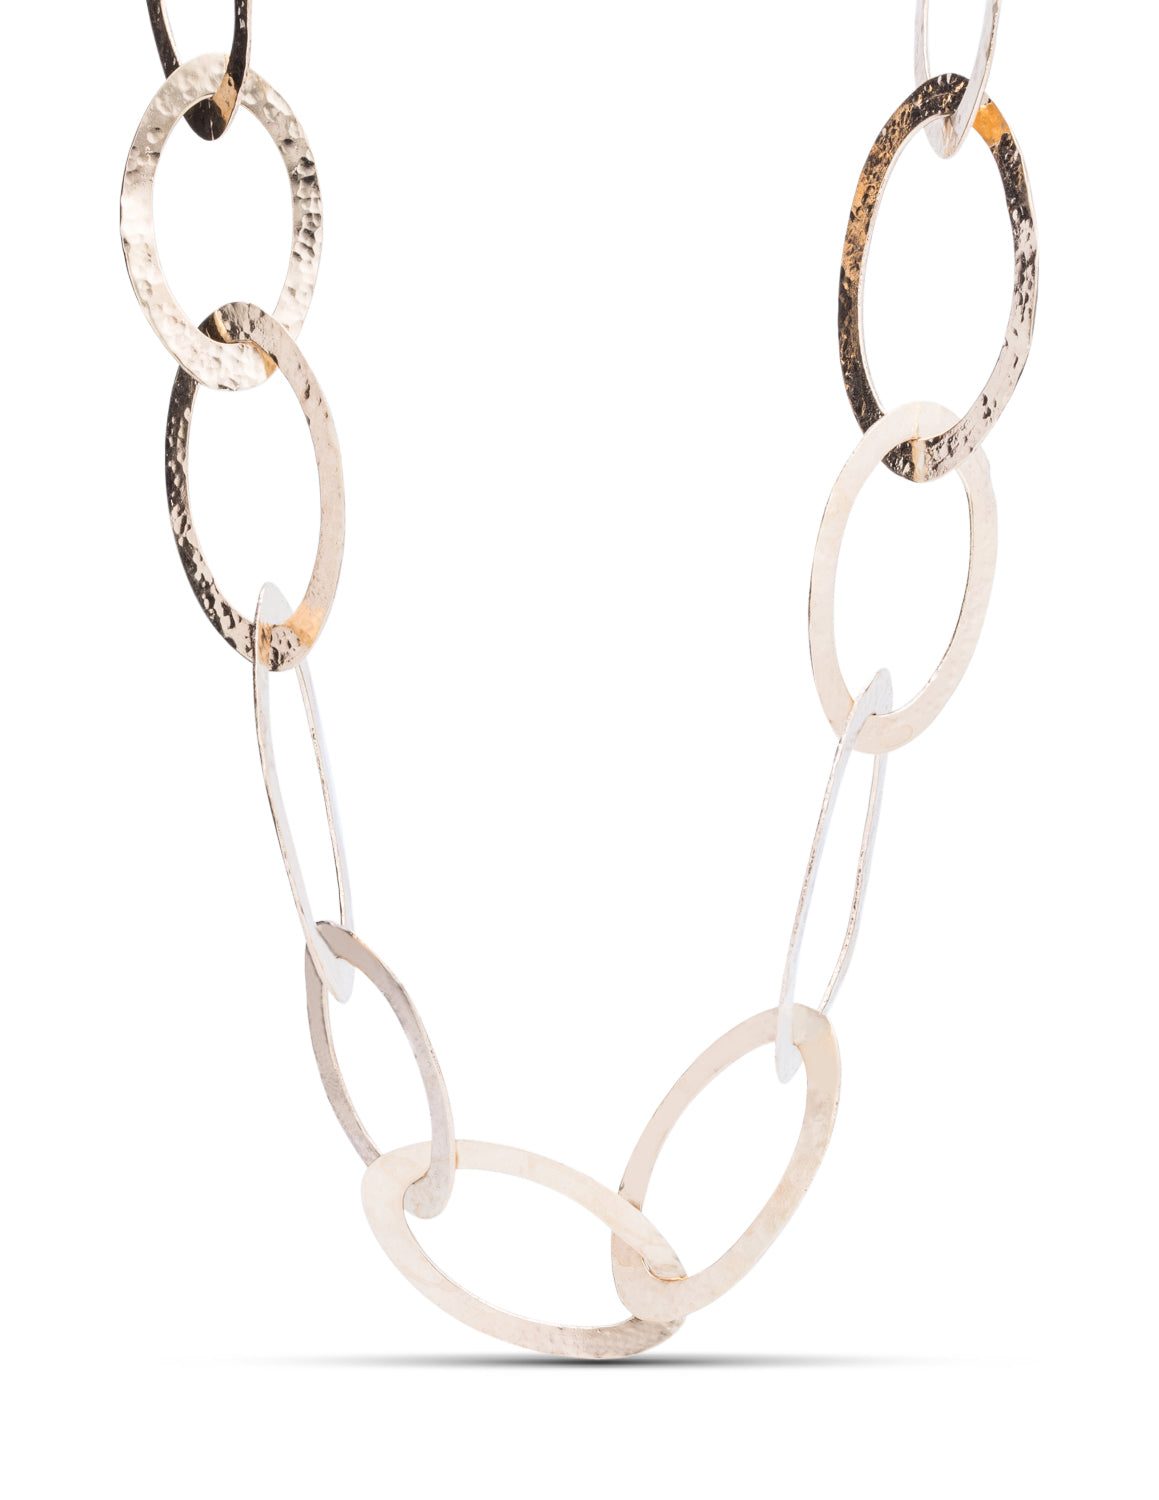 Forged Gold Necklace - Charles Koll Jewellers